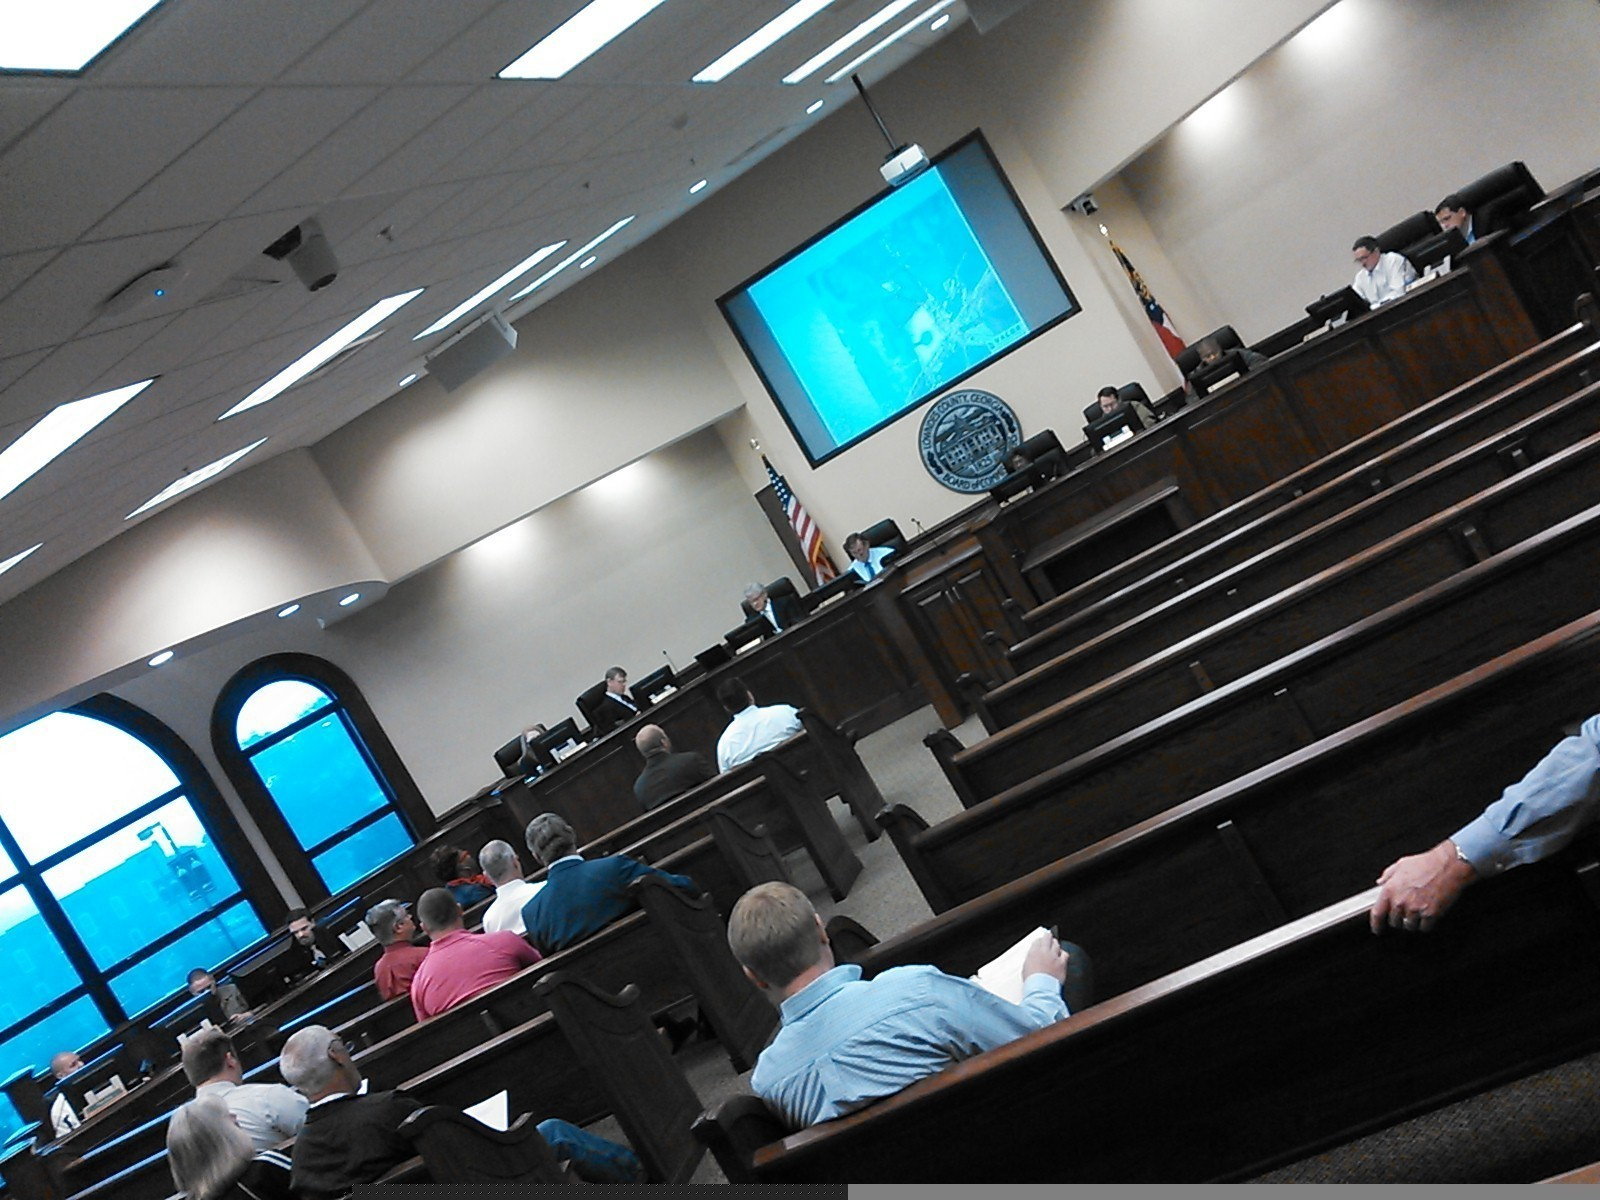 REZ-2014-17 Grand Bay Estates, in Lowndes County Commission Work Session, by John S. Quarterman, 10 November 2014